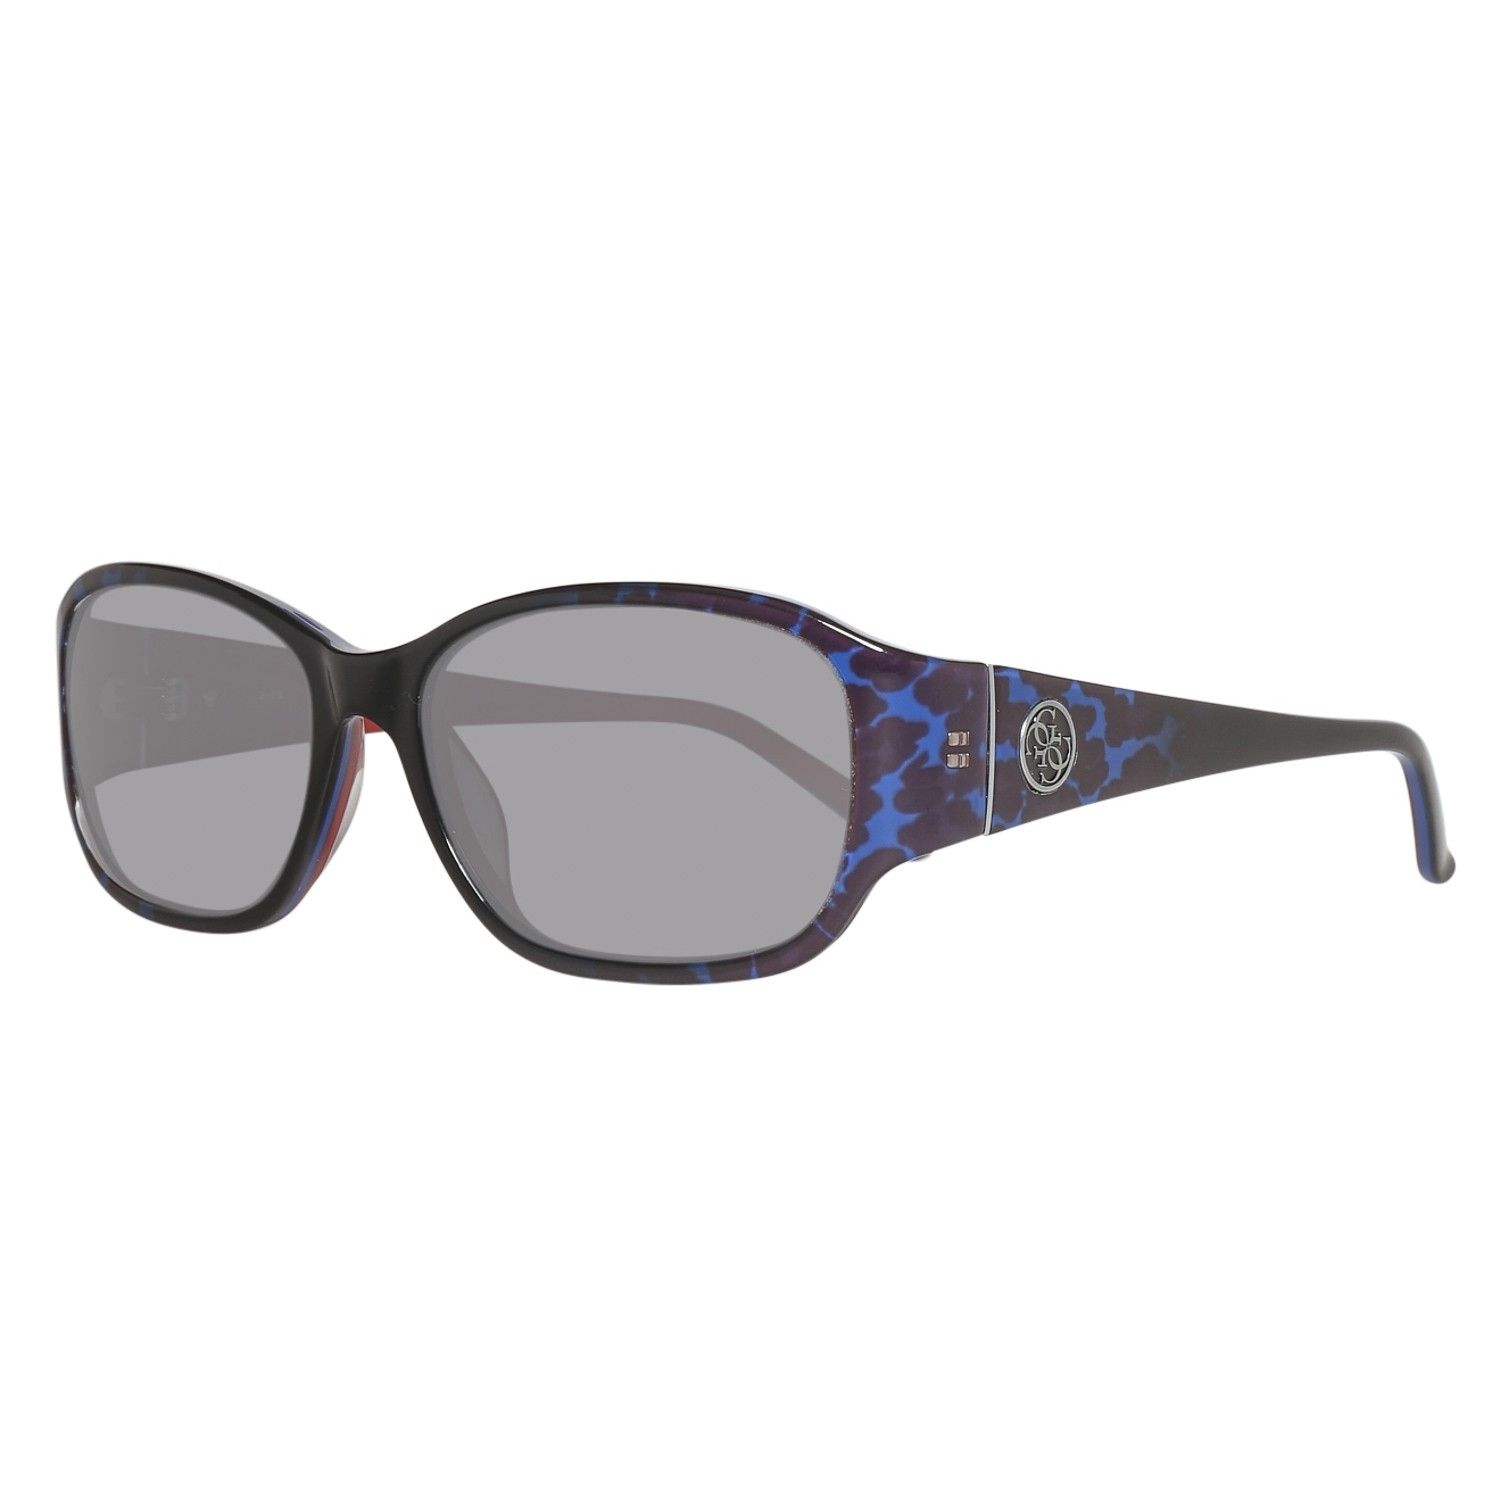 SUNGLASSES – POLARIZED FASHION SUN GLASSES GUESS  MULTICOLORED  WOMAN